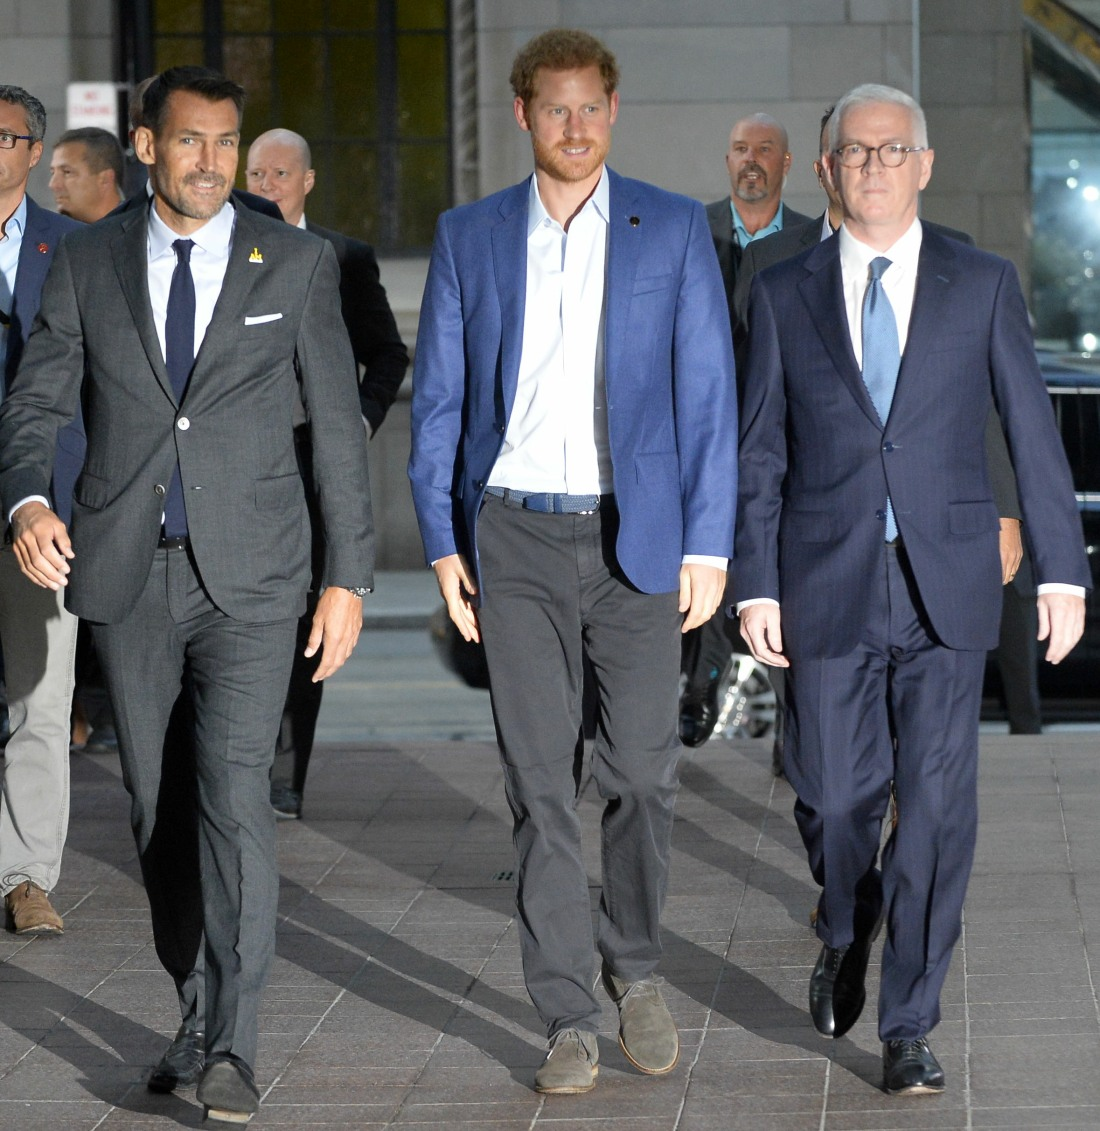 Prince Harry arrives in Toronto ahead of the Invictus Games (and his engagement)